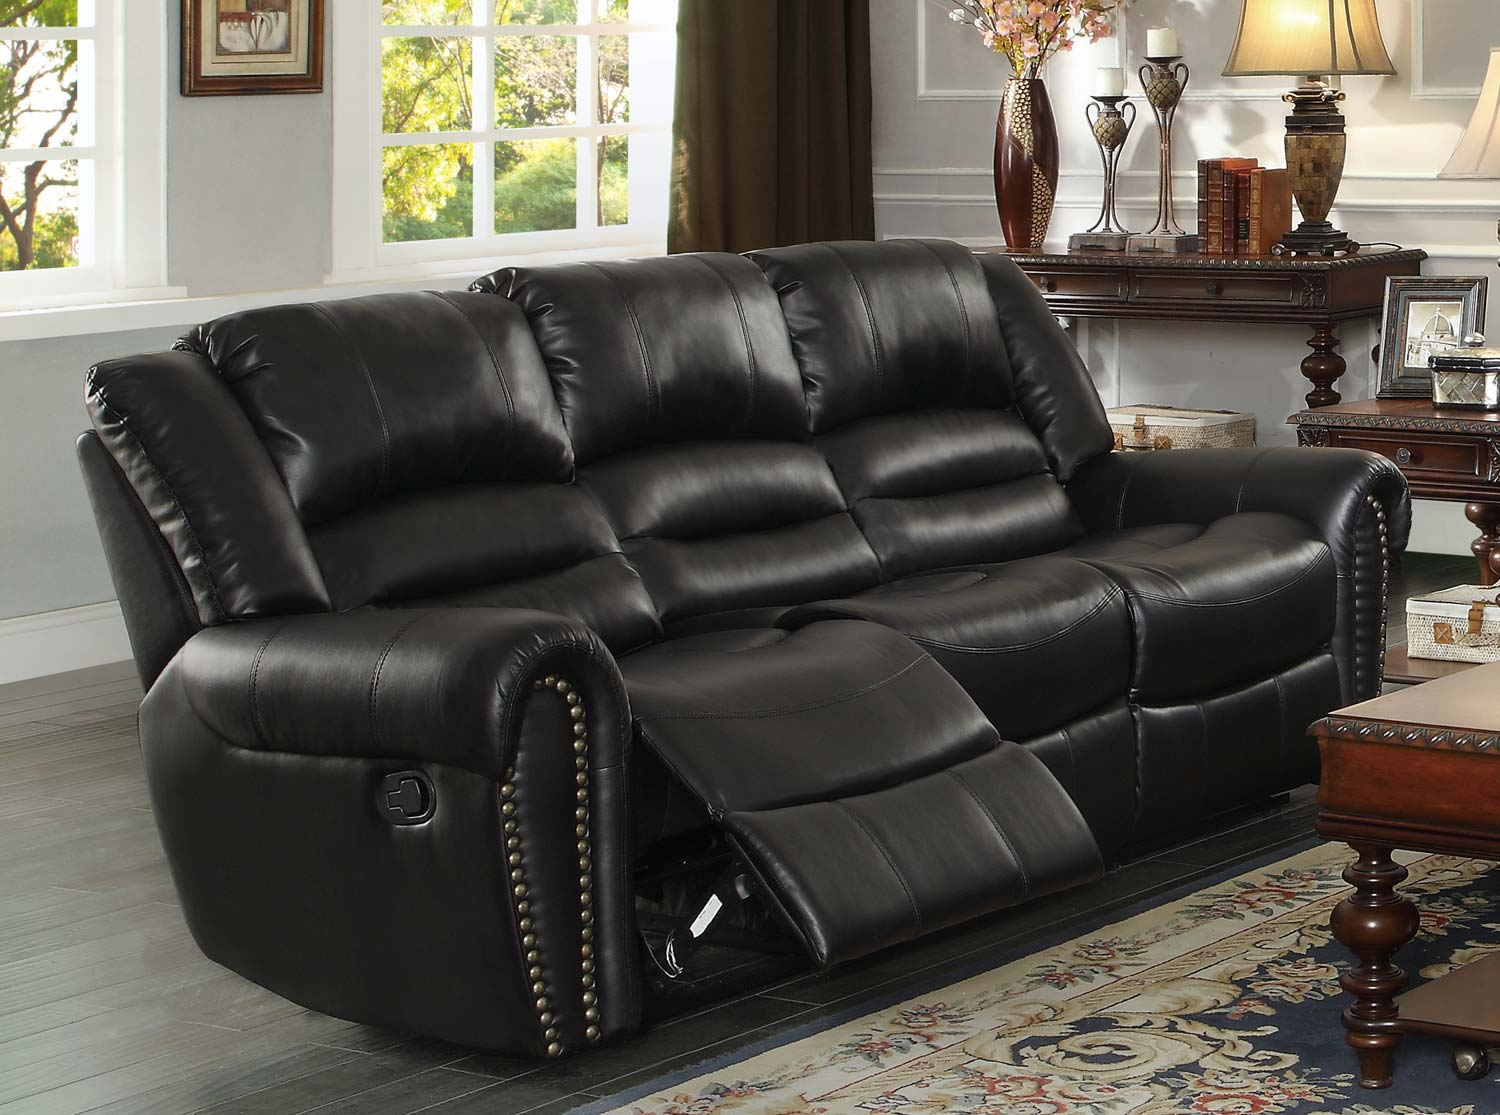 Homelegance Center Hill Double Reclining Sofa - Black Bonded Leather Match & Homelegance Center Hill Double Reclining Sofa - Black Bonded ... islam-shia.org